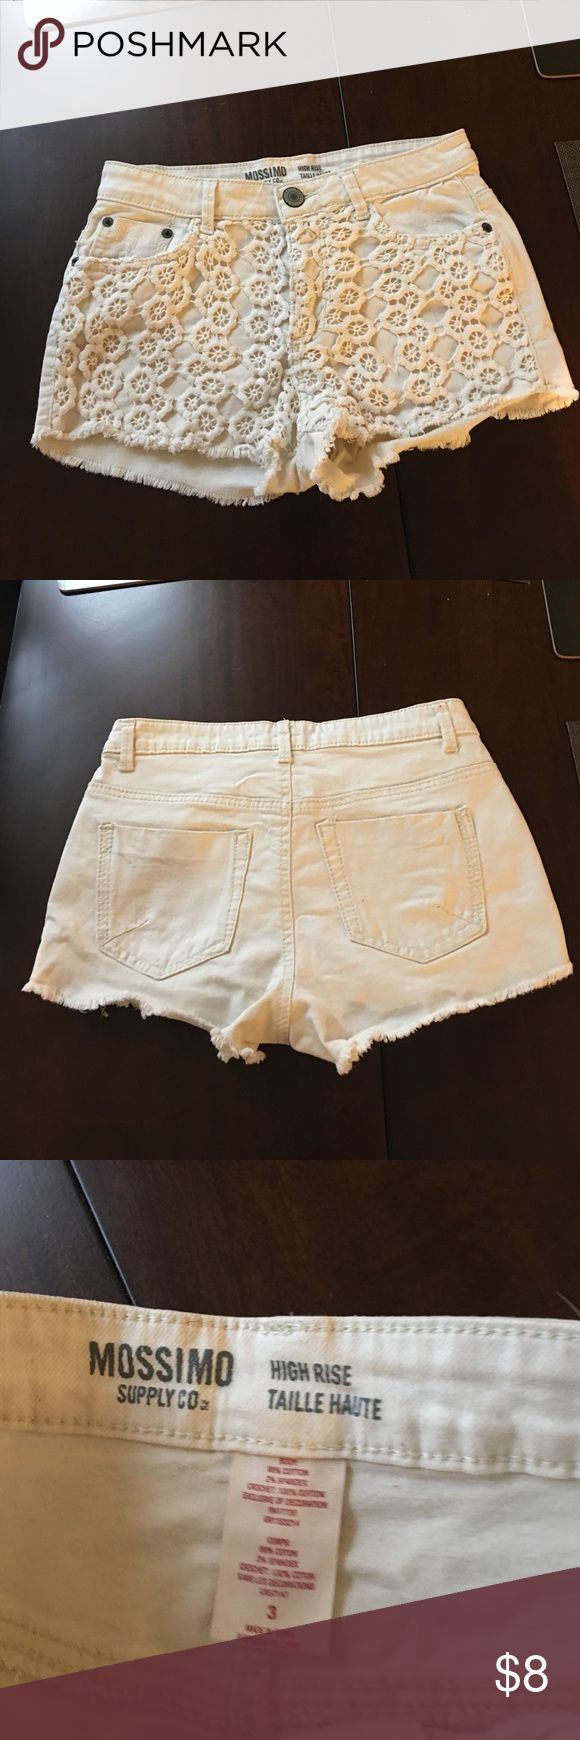 High Rise Mossimo Cream Shorts Size 3 High Rise Mossimo Cream Shorts Size 3 Mossimo Supply Co Shorts Jean Shorts